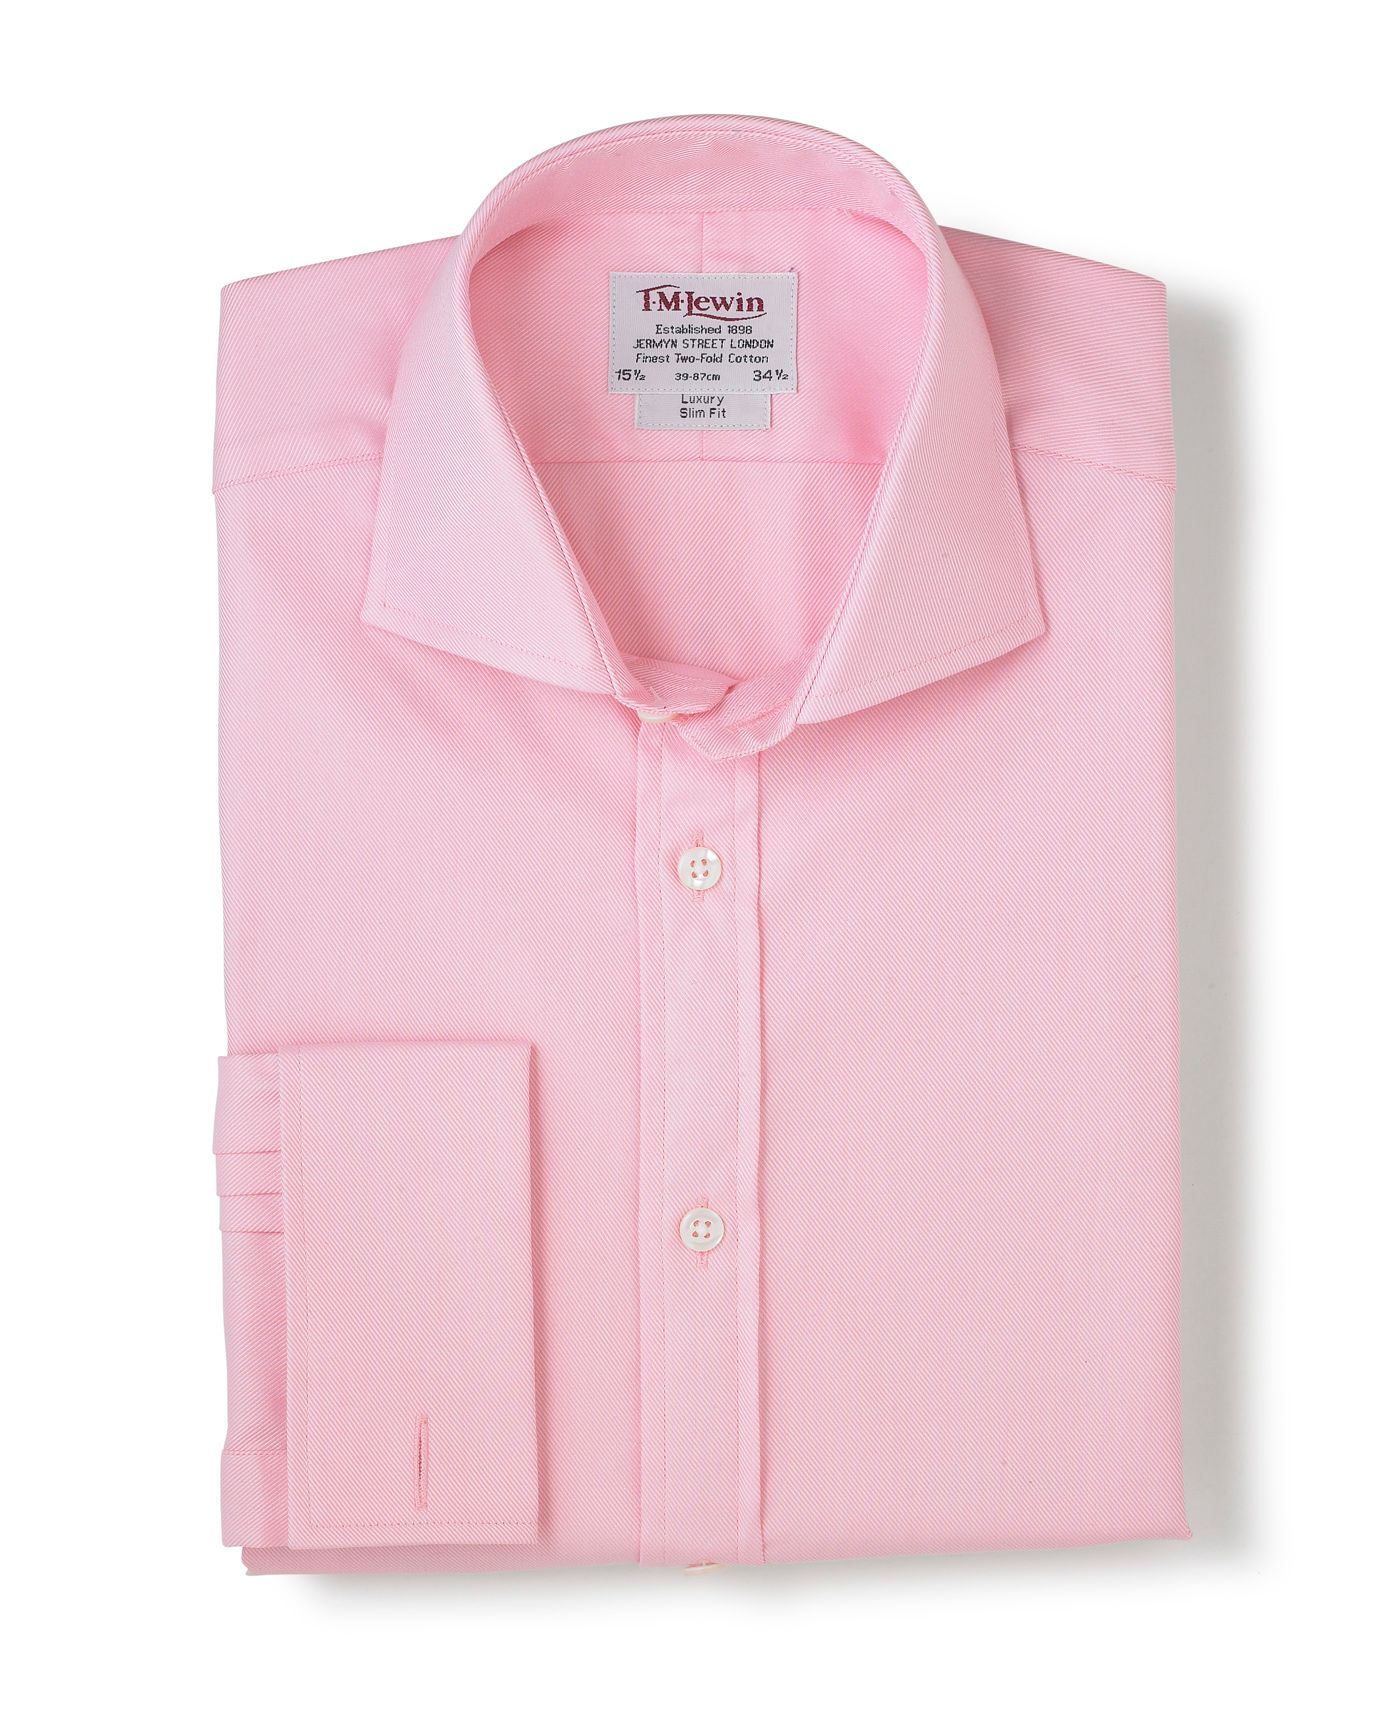 Luxury pink shirt